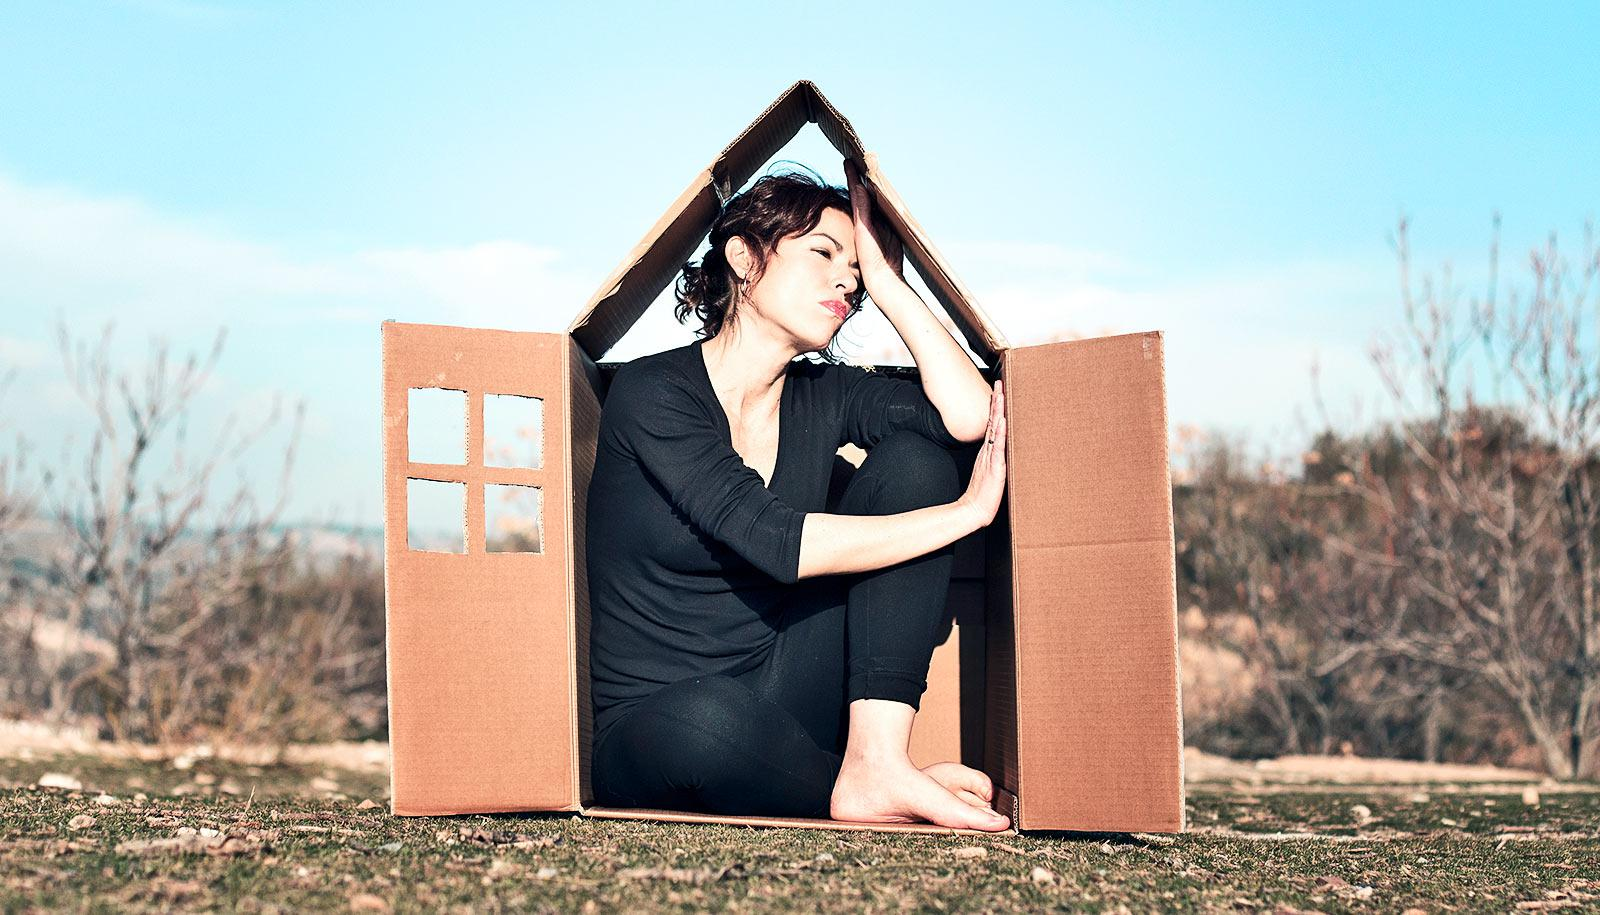 A woman sits looking anxious in a box cut to look like a tiny house